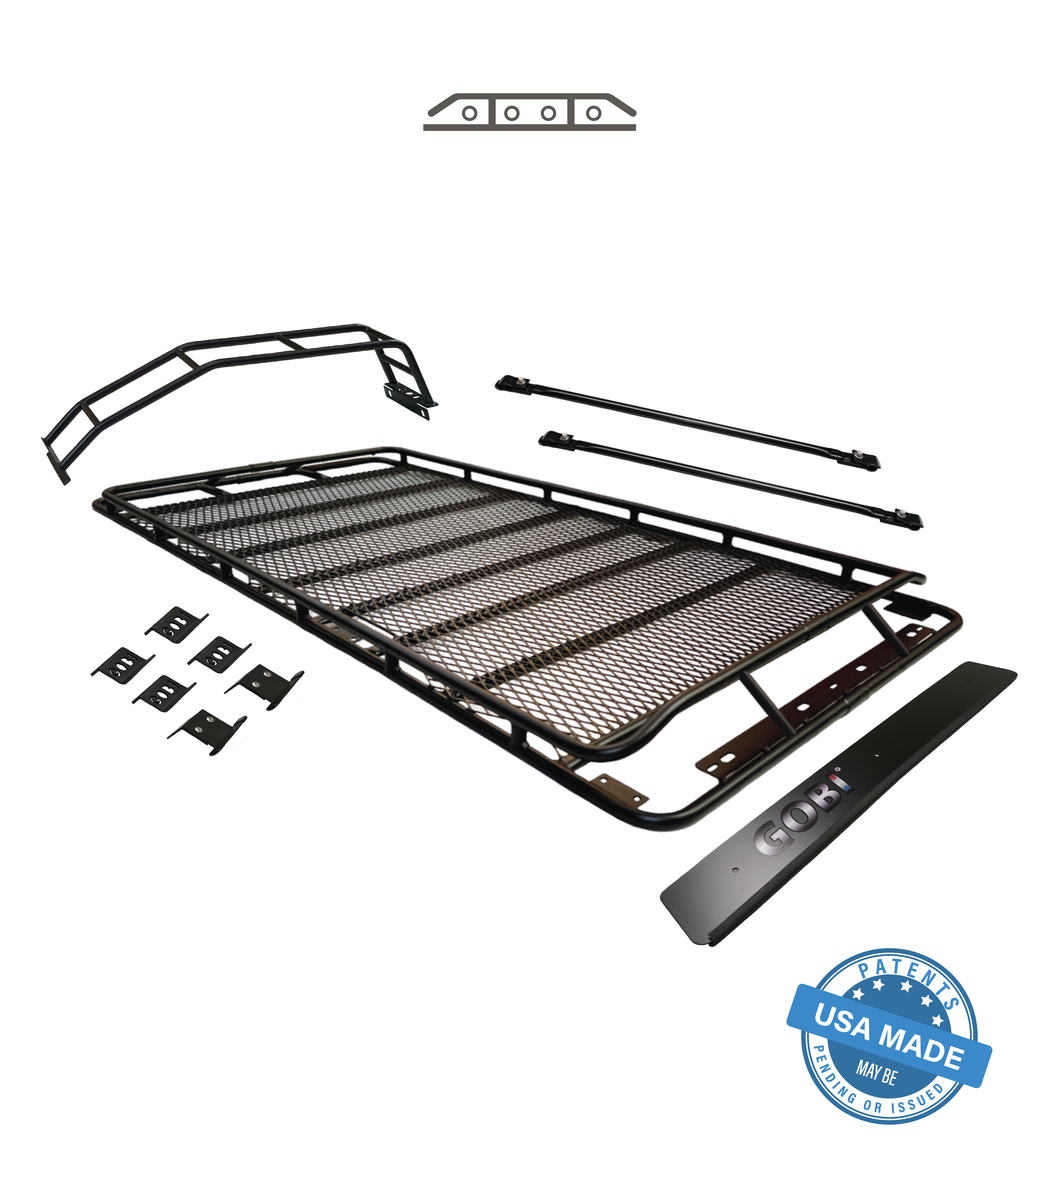 Gobi - Stealth Rack - NO Sun Roof - Multi Light Set Up - Toyota 4Runner 5th Gen 2010-2021 - 4x4 Runners